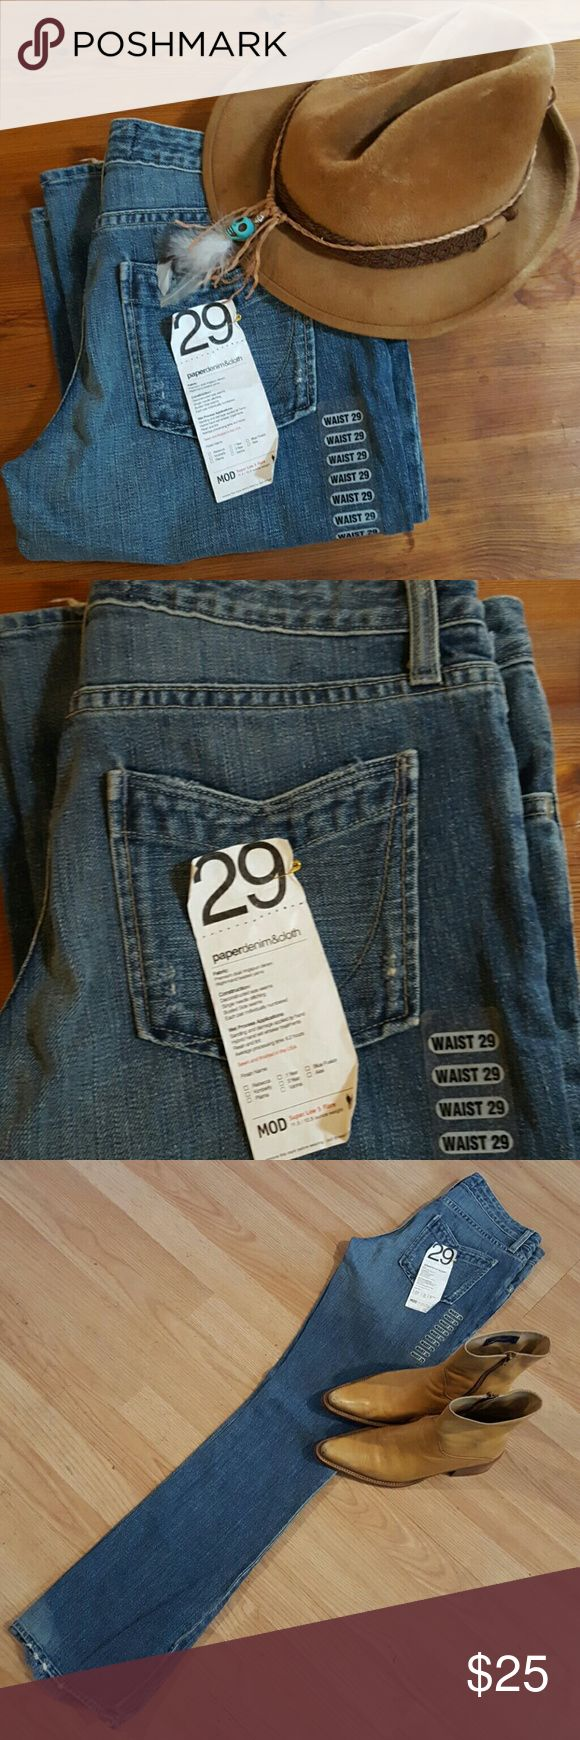 Paper denim Jeans Light wash jeans with intentional worn out hem . New with tags in a boot cut style is so right now a perfect for tomorrows fashion . Casual look that can be dressed up with heels , boots or your favorite shoes . Or go for a white shirt under a black leather jacket and converse high tops in black or white ... great price for a new jean Jeans Boot Cut